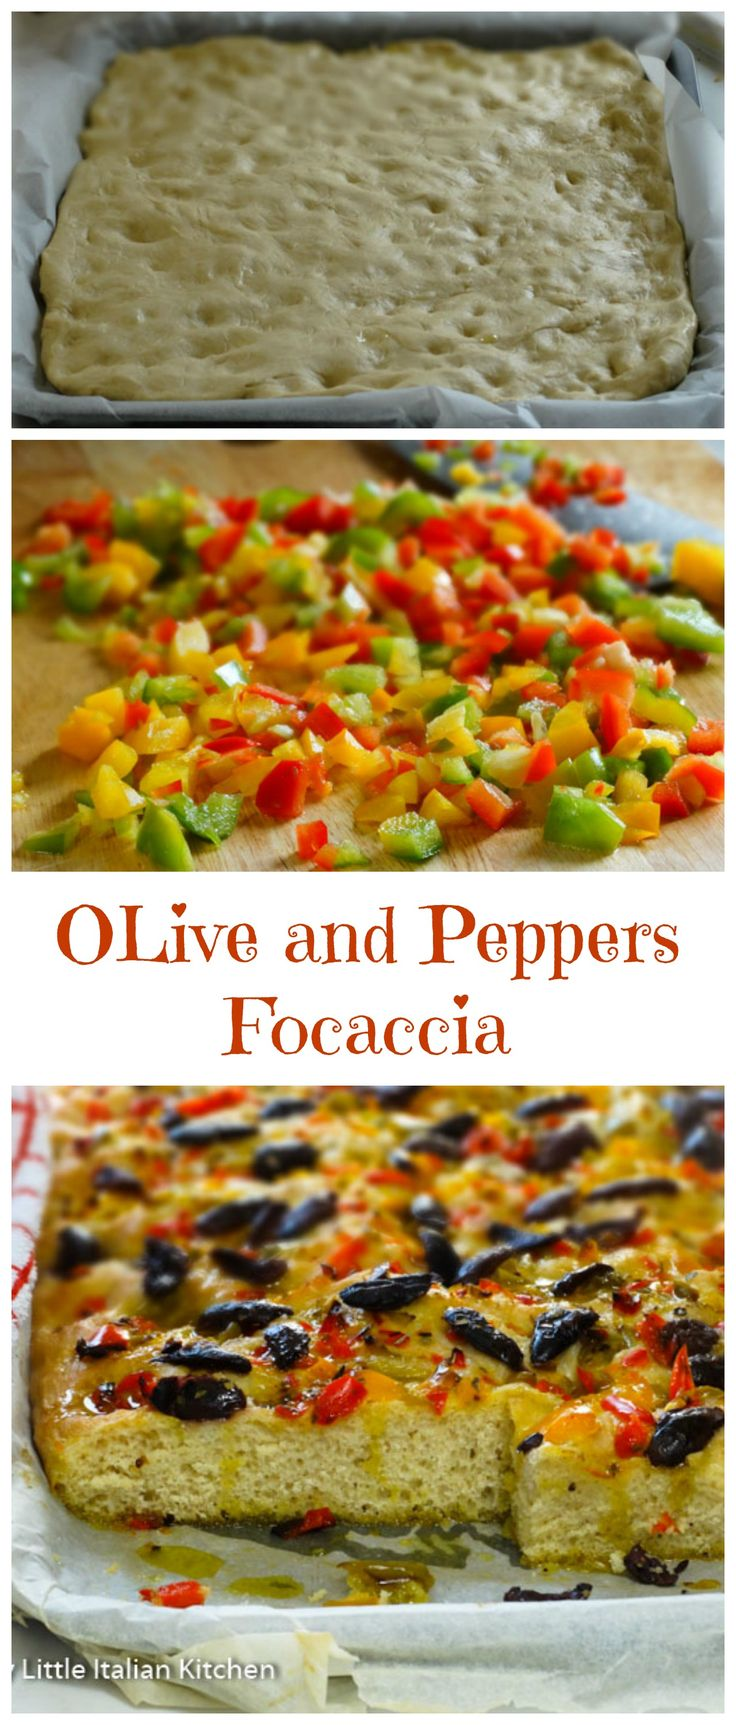 I often make this Olives Focaccia when I have parties as it is so tasty and perfect for sharing. Olives and peppers make a good combination of flavours and colours.